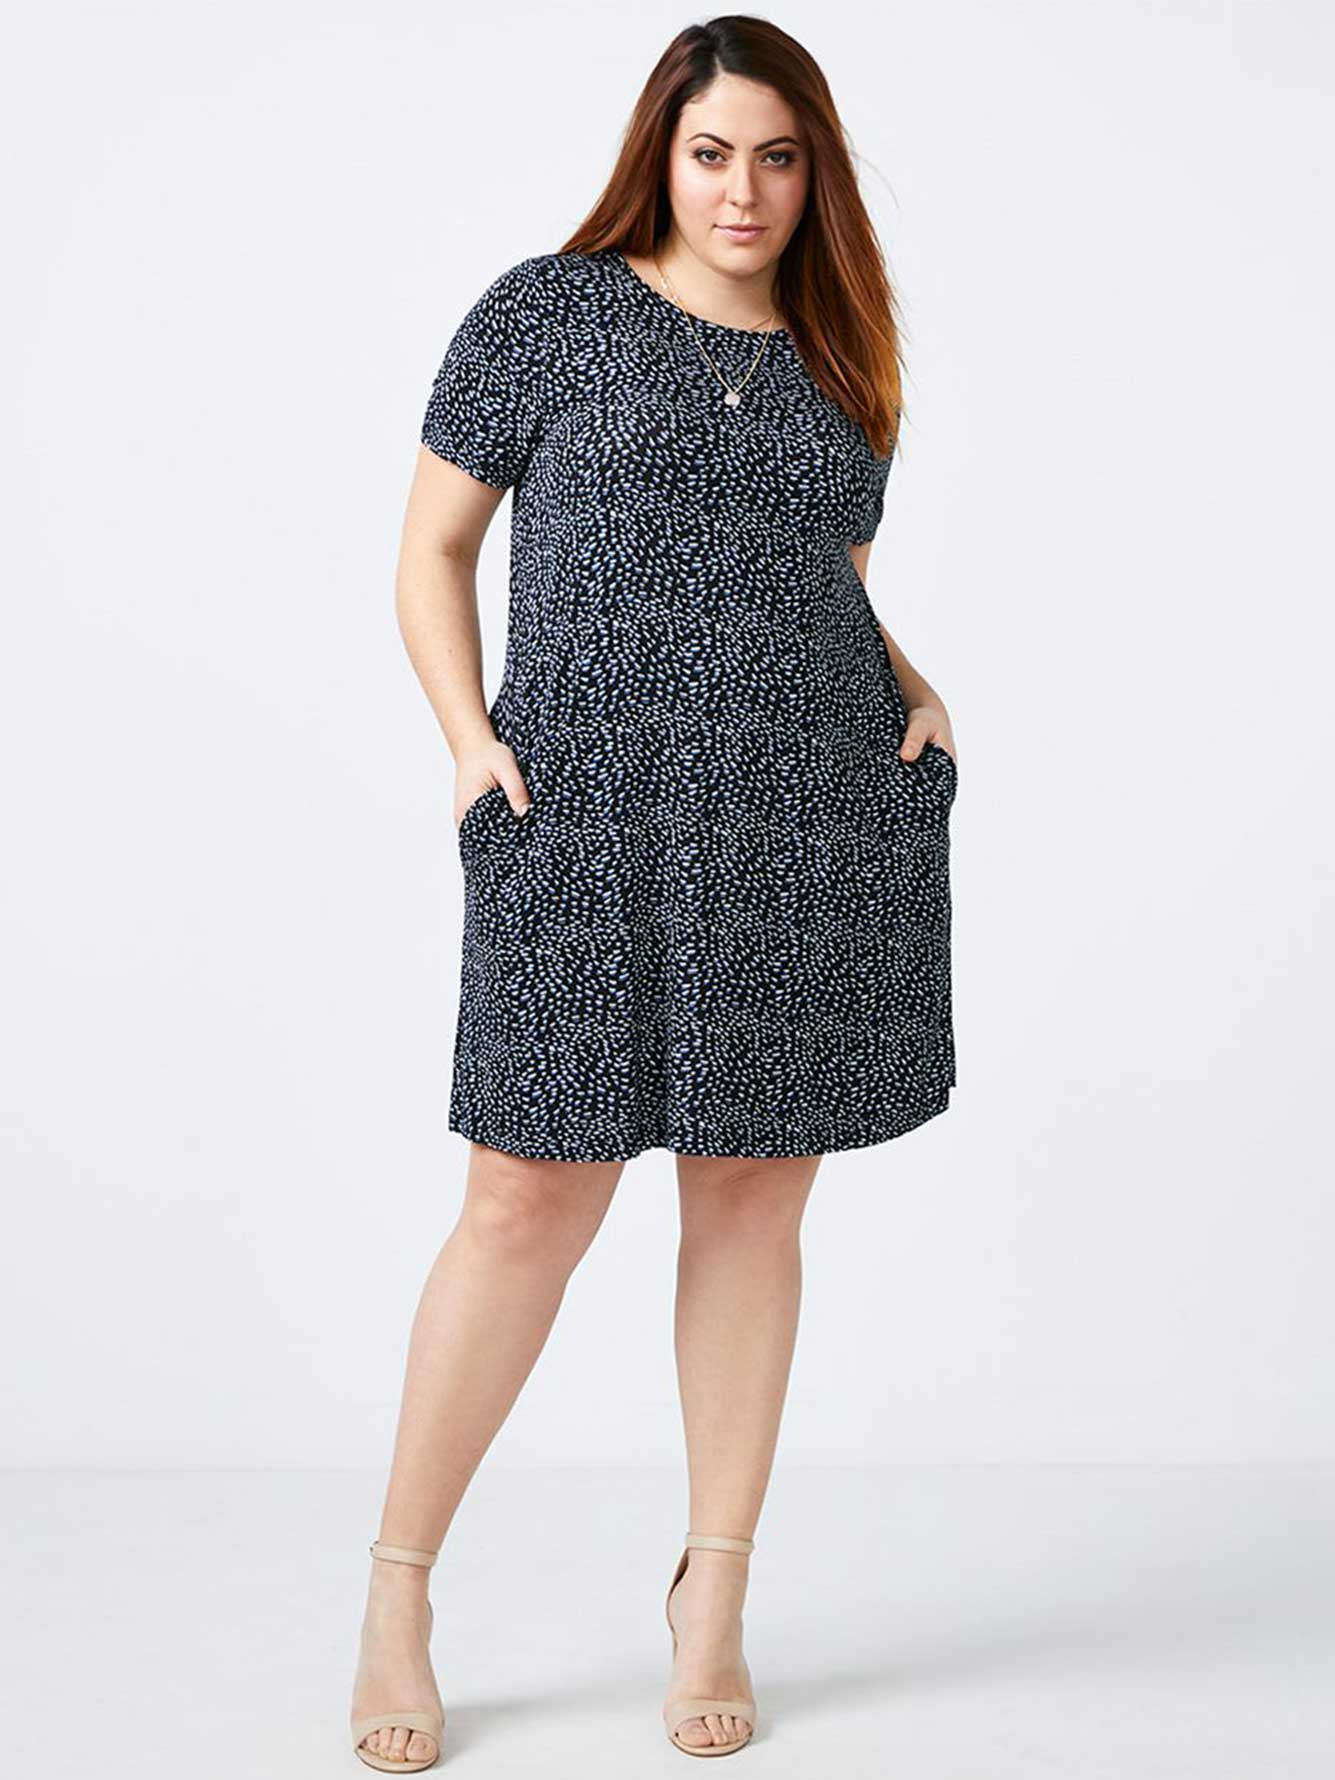 Short Sleeve Printed Swing Dress - In Every Story